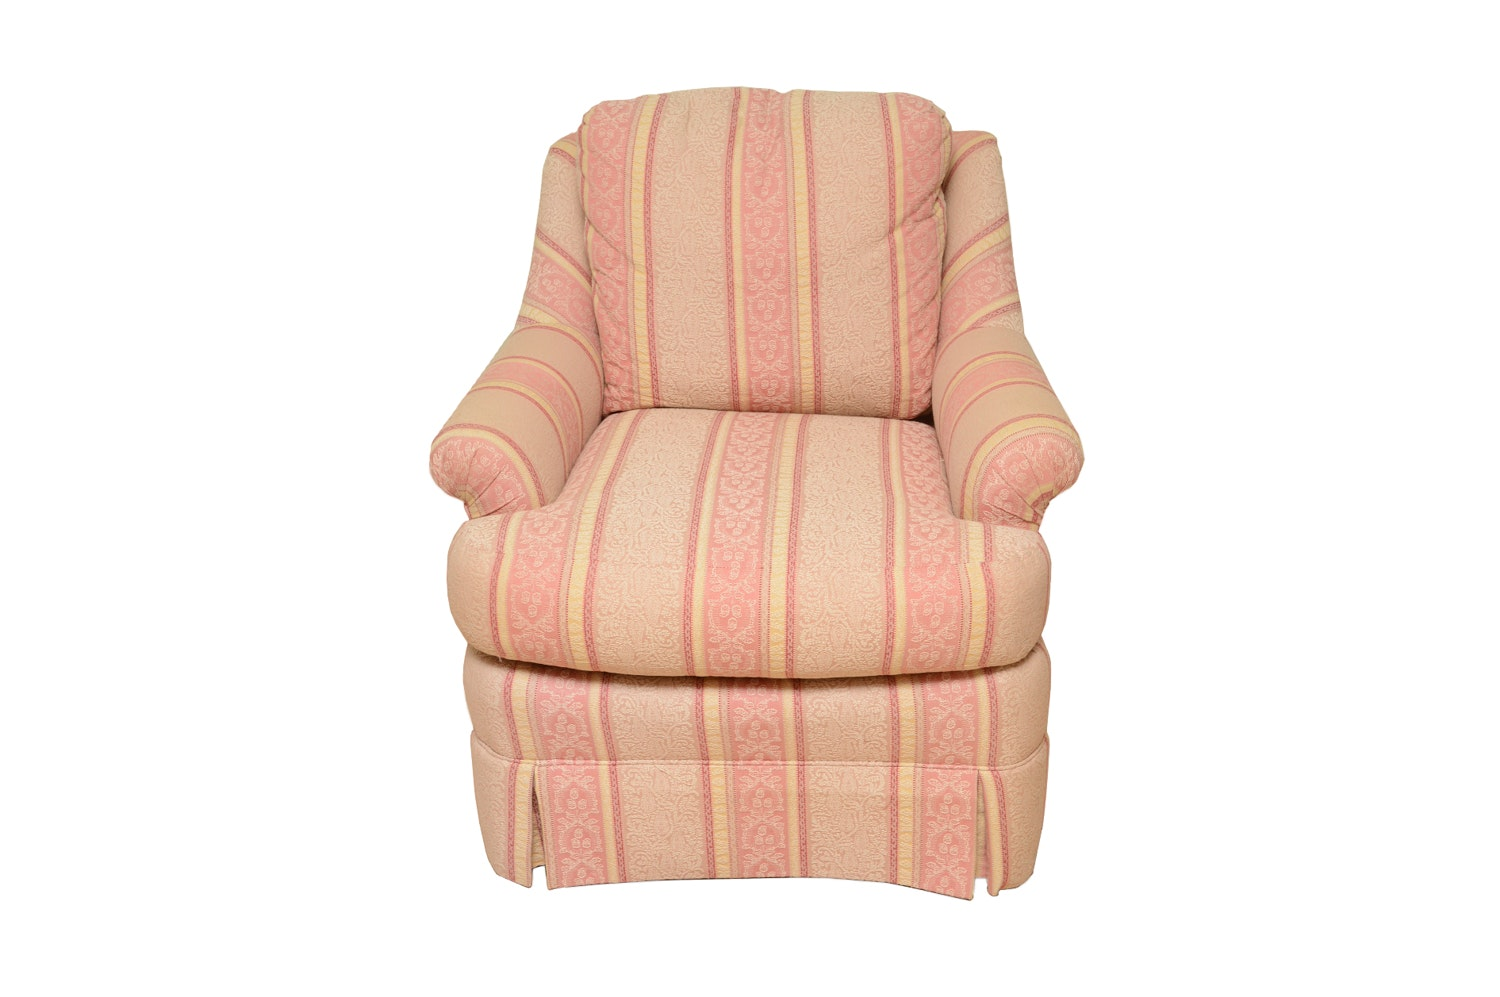 Vintage Upholstered Armchair by Sherrill